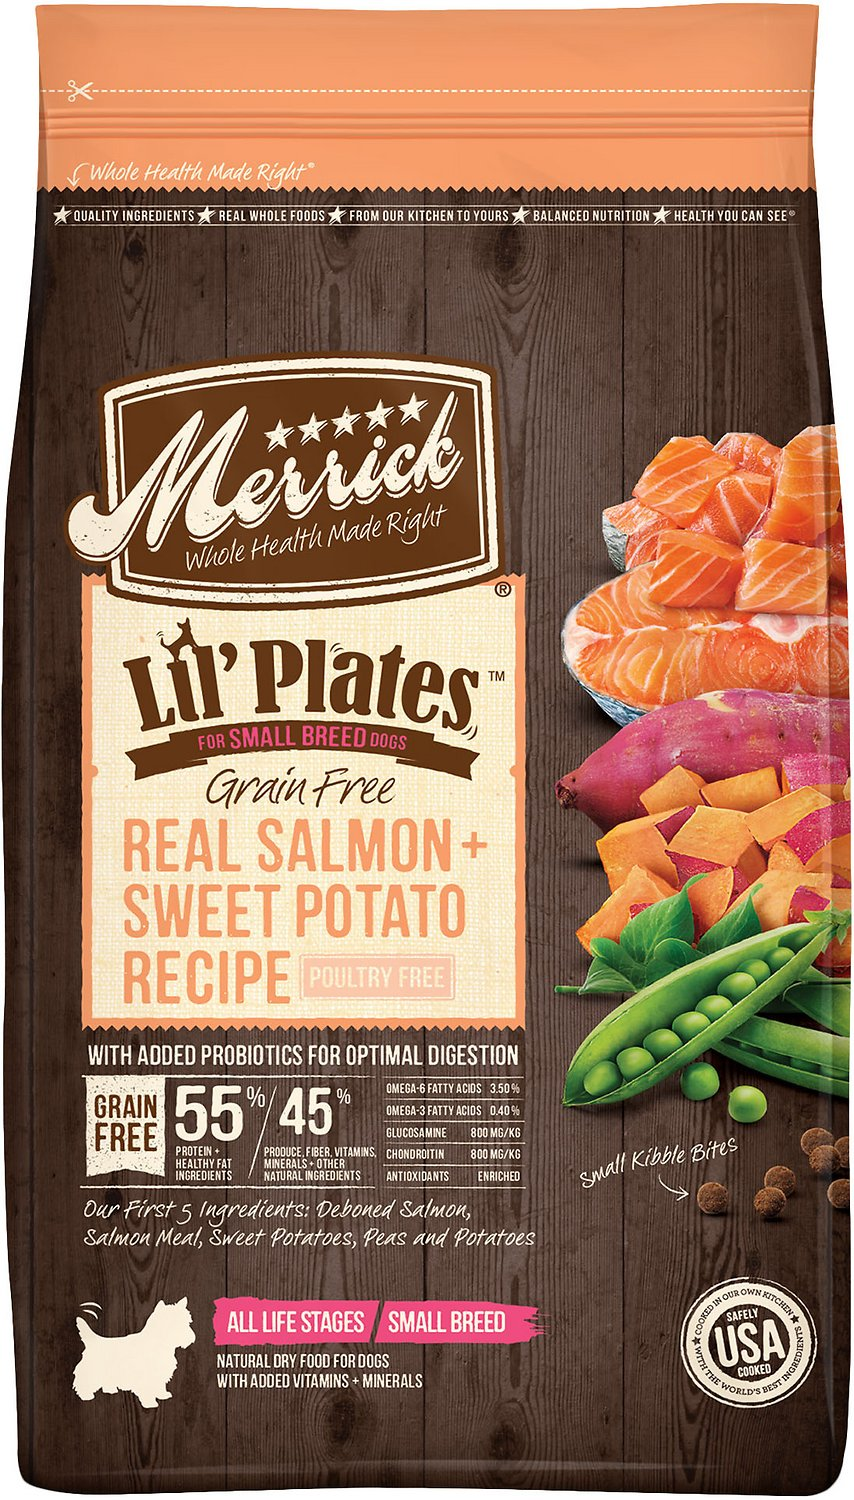 Merrick Lil' Plates Grain-Free Real Salmon & Sweet Potato Dry Dog Food Image